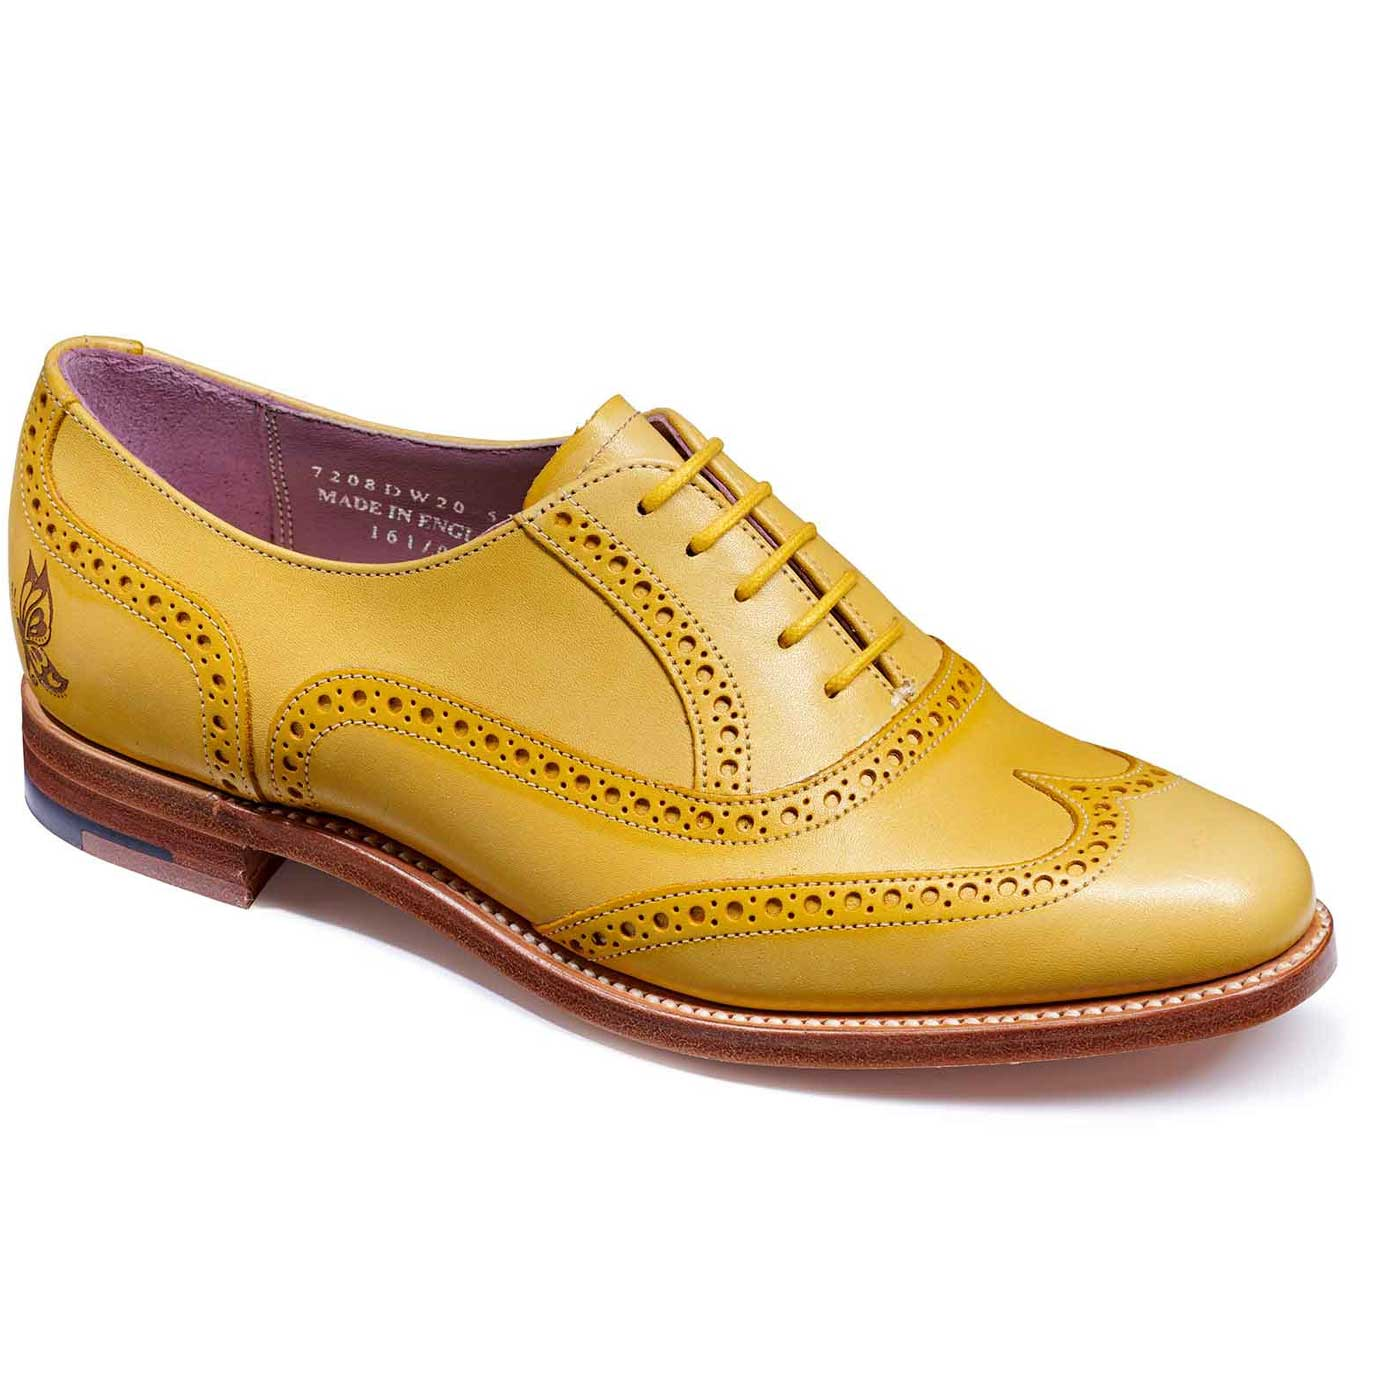 605f814ae4e2d Barker Shoes - Ladies Satina Brogues - Yellow Hand Painted